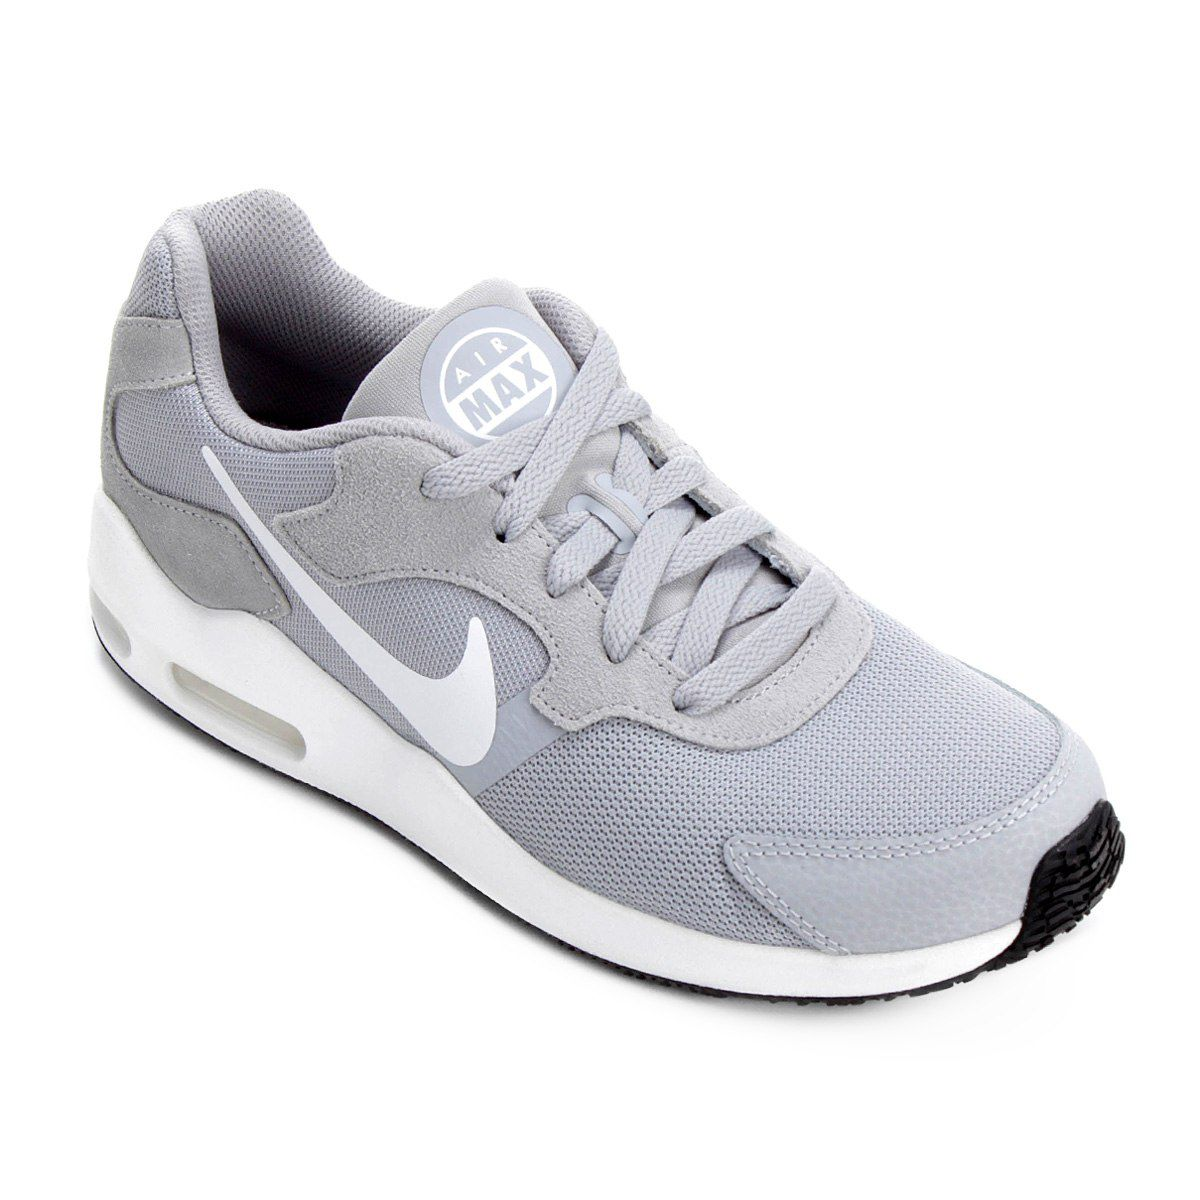 a46dc43ad Tênis Nike Air Max Guile Masculino - Cinza Branco - Joinville ...